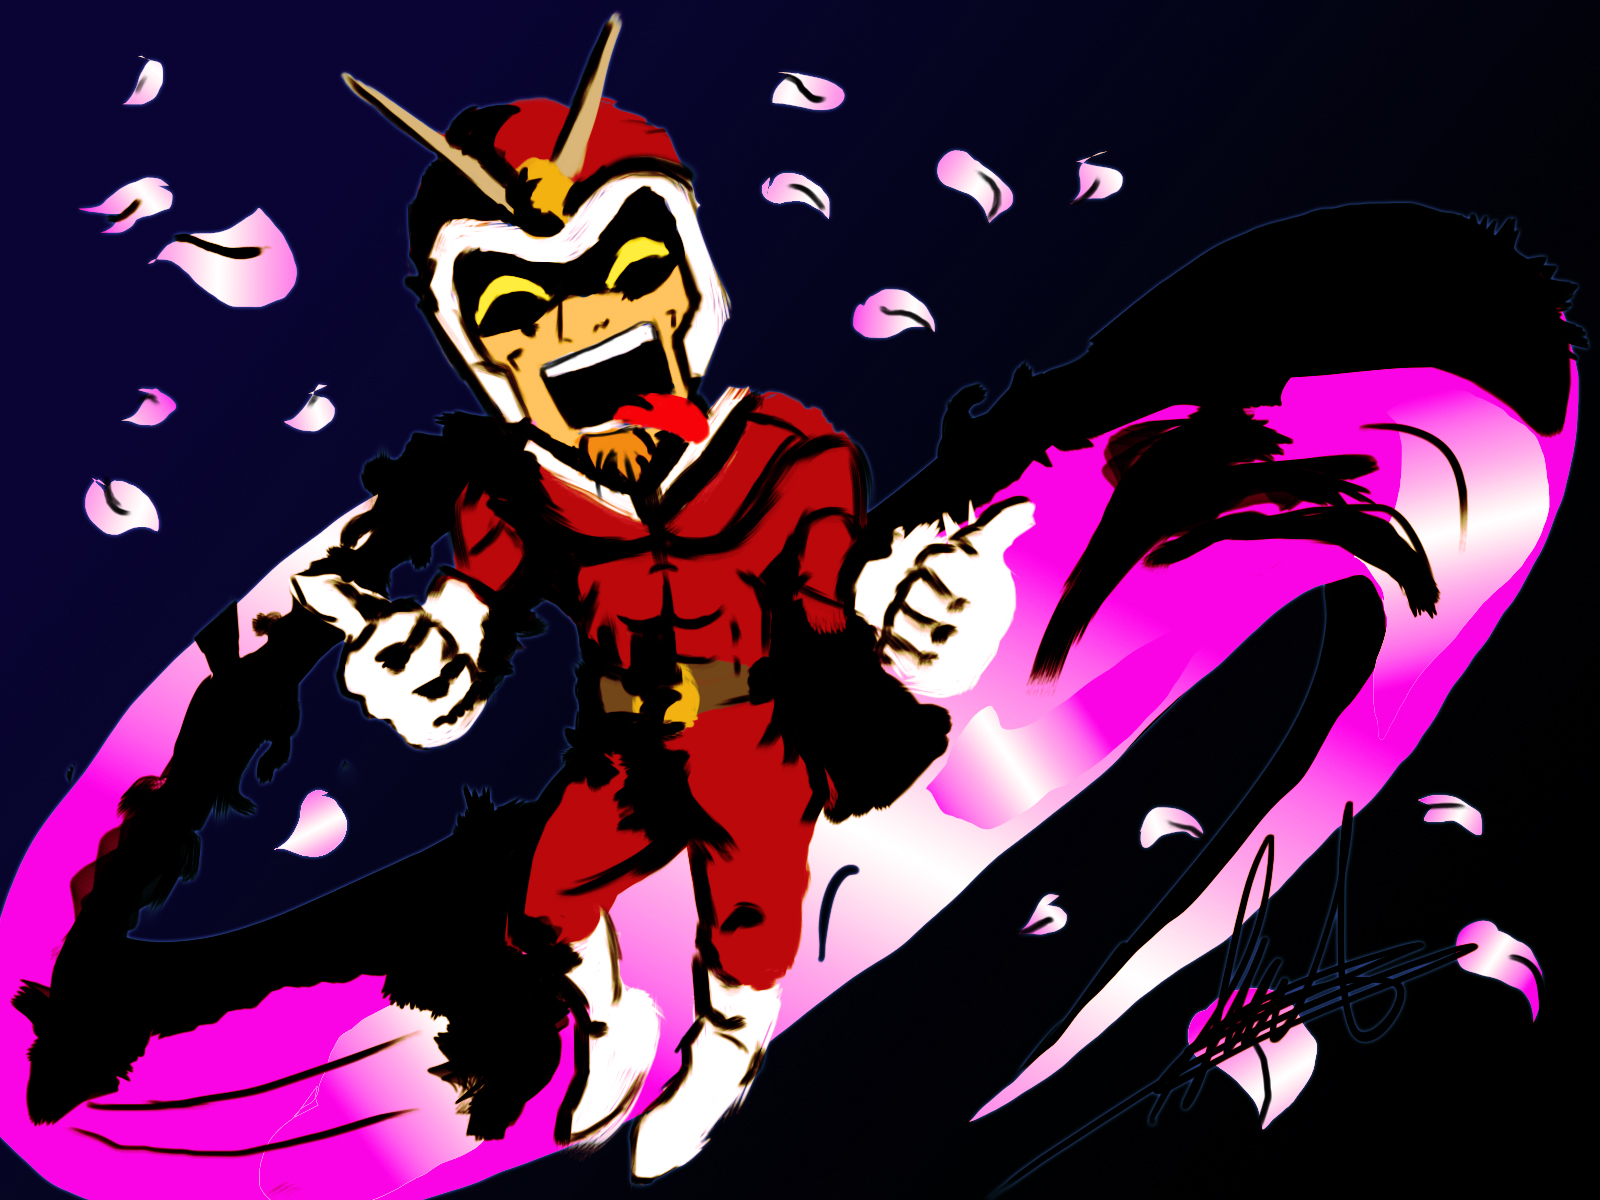 Life is viewtiful!